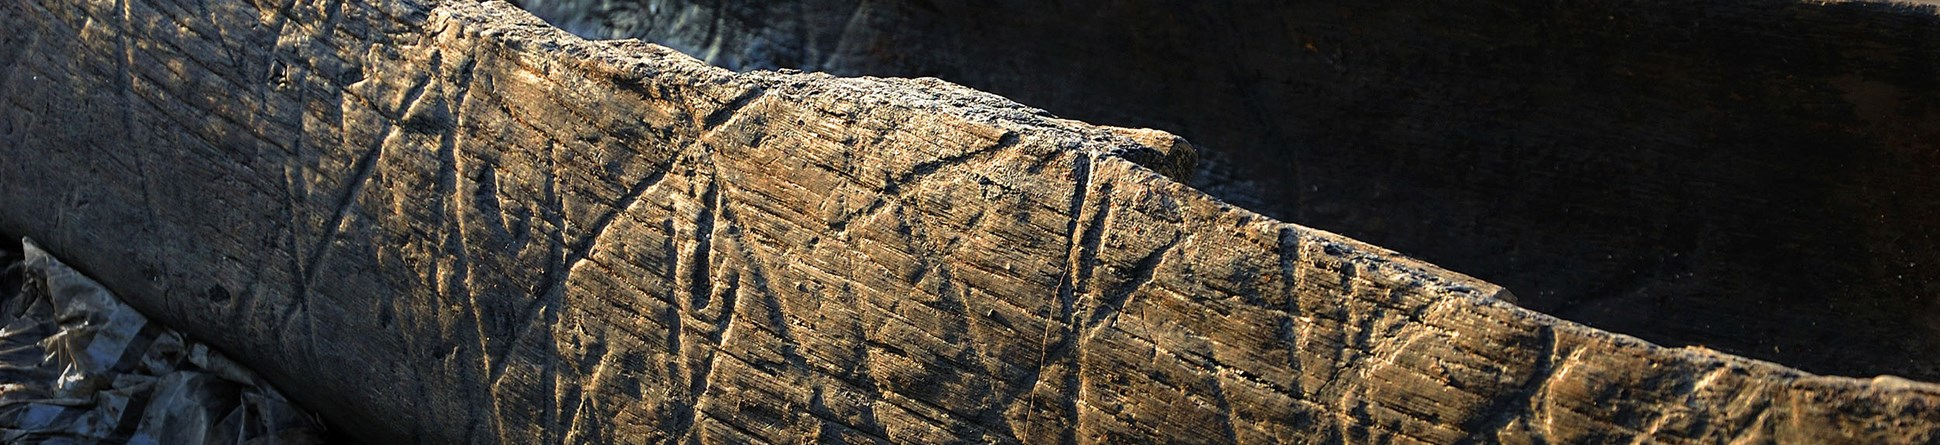 Detail of Boat 1, showing diagonal grooved markings on the interior and exterior of the 6.3m oak logboat which was excavated in 2011–12. This boat, which dates to the Early Iron Age, was found in the Must Farm palaeochannel c. 250m upstream of the location of the current timber platform investigation.